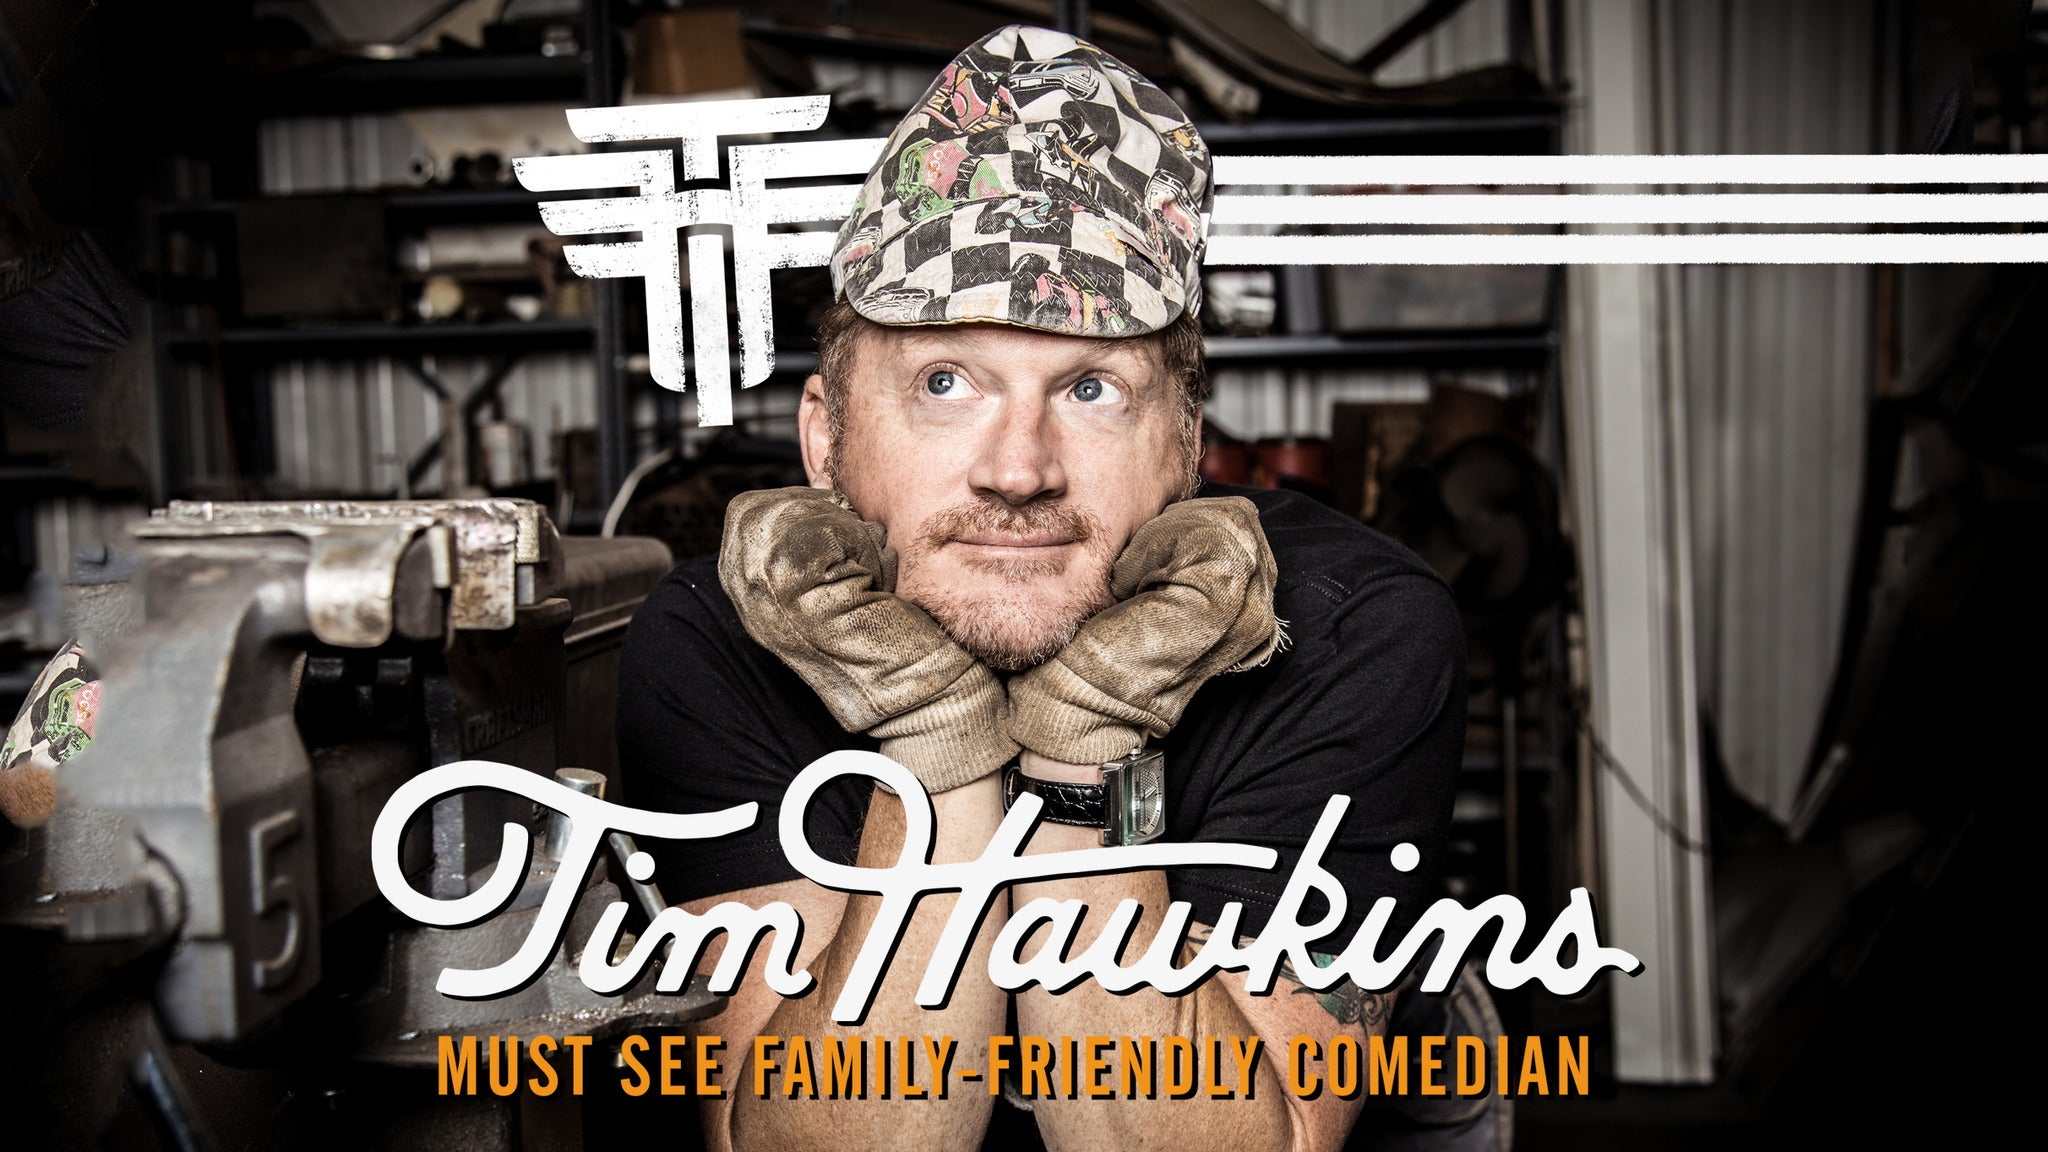 Tim Hawkins at Adler Theatre